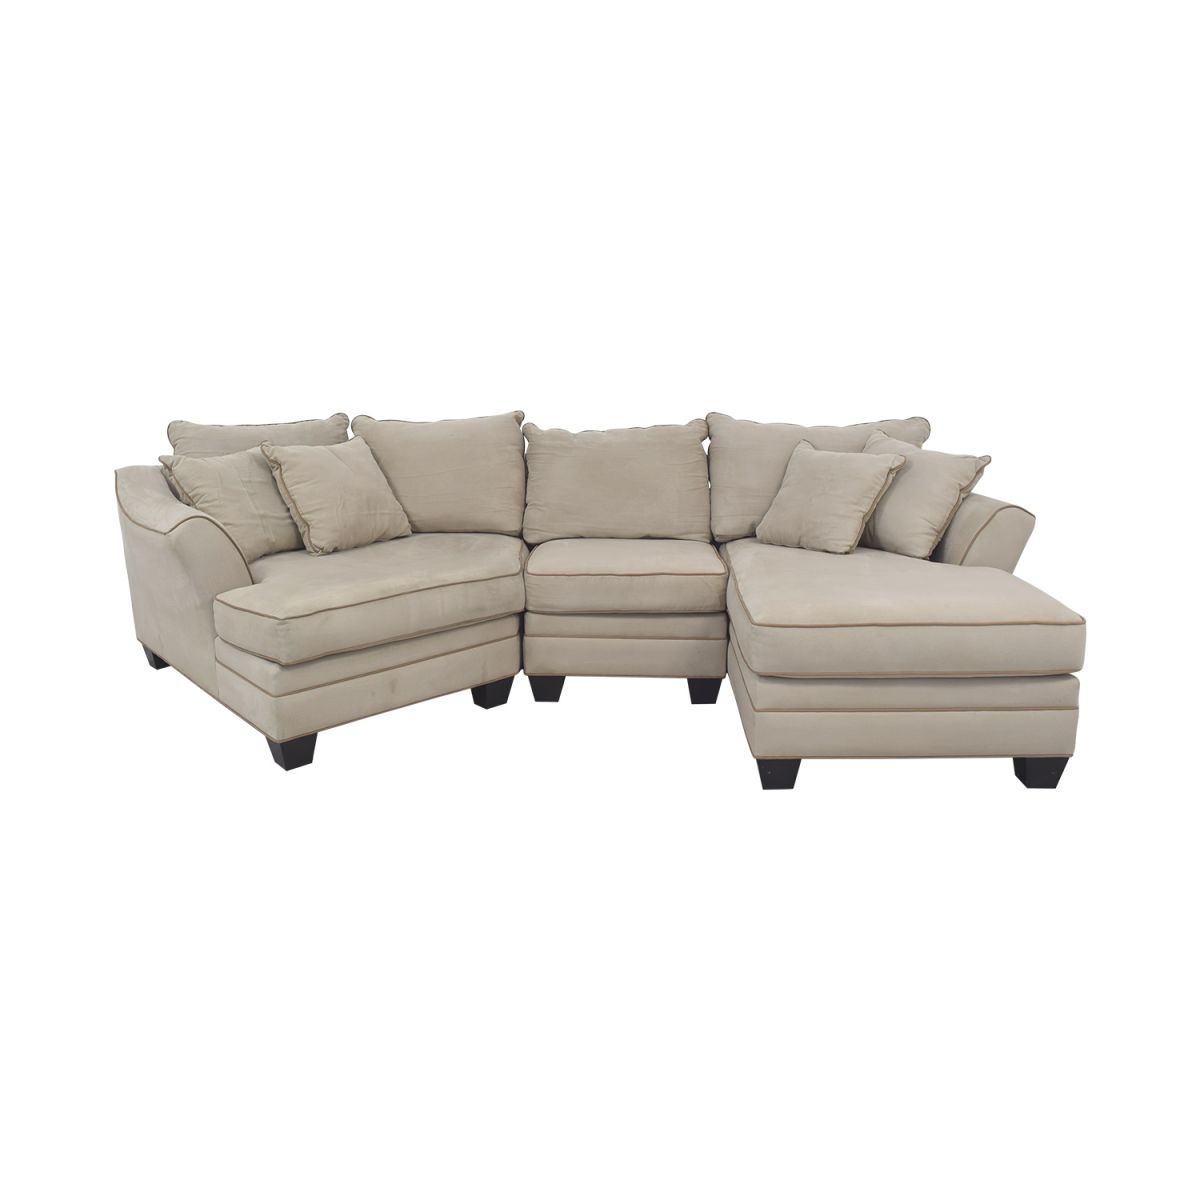 82% Off – Raymour & Flanigan Raymour & Flanigan Foresthill Two-Piece Sectional Sofa / Sofas throughout Lovely Raymour And Flanigan Sectional Sofas